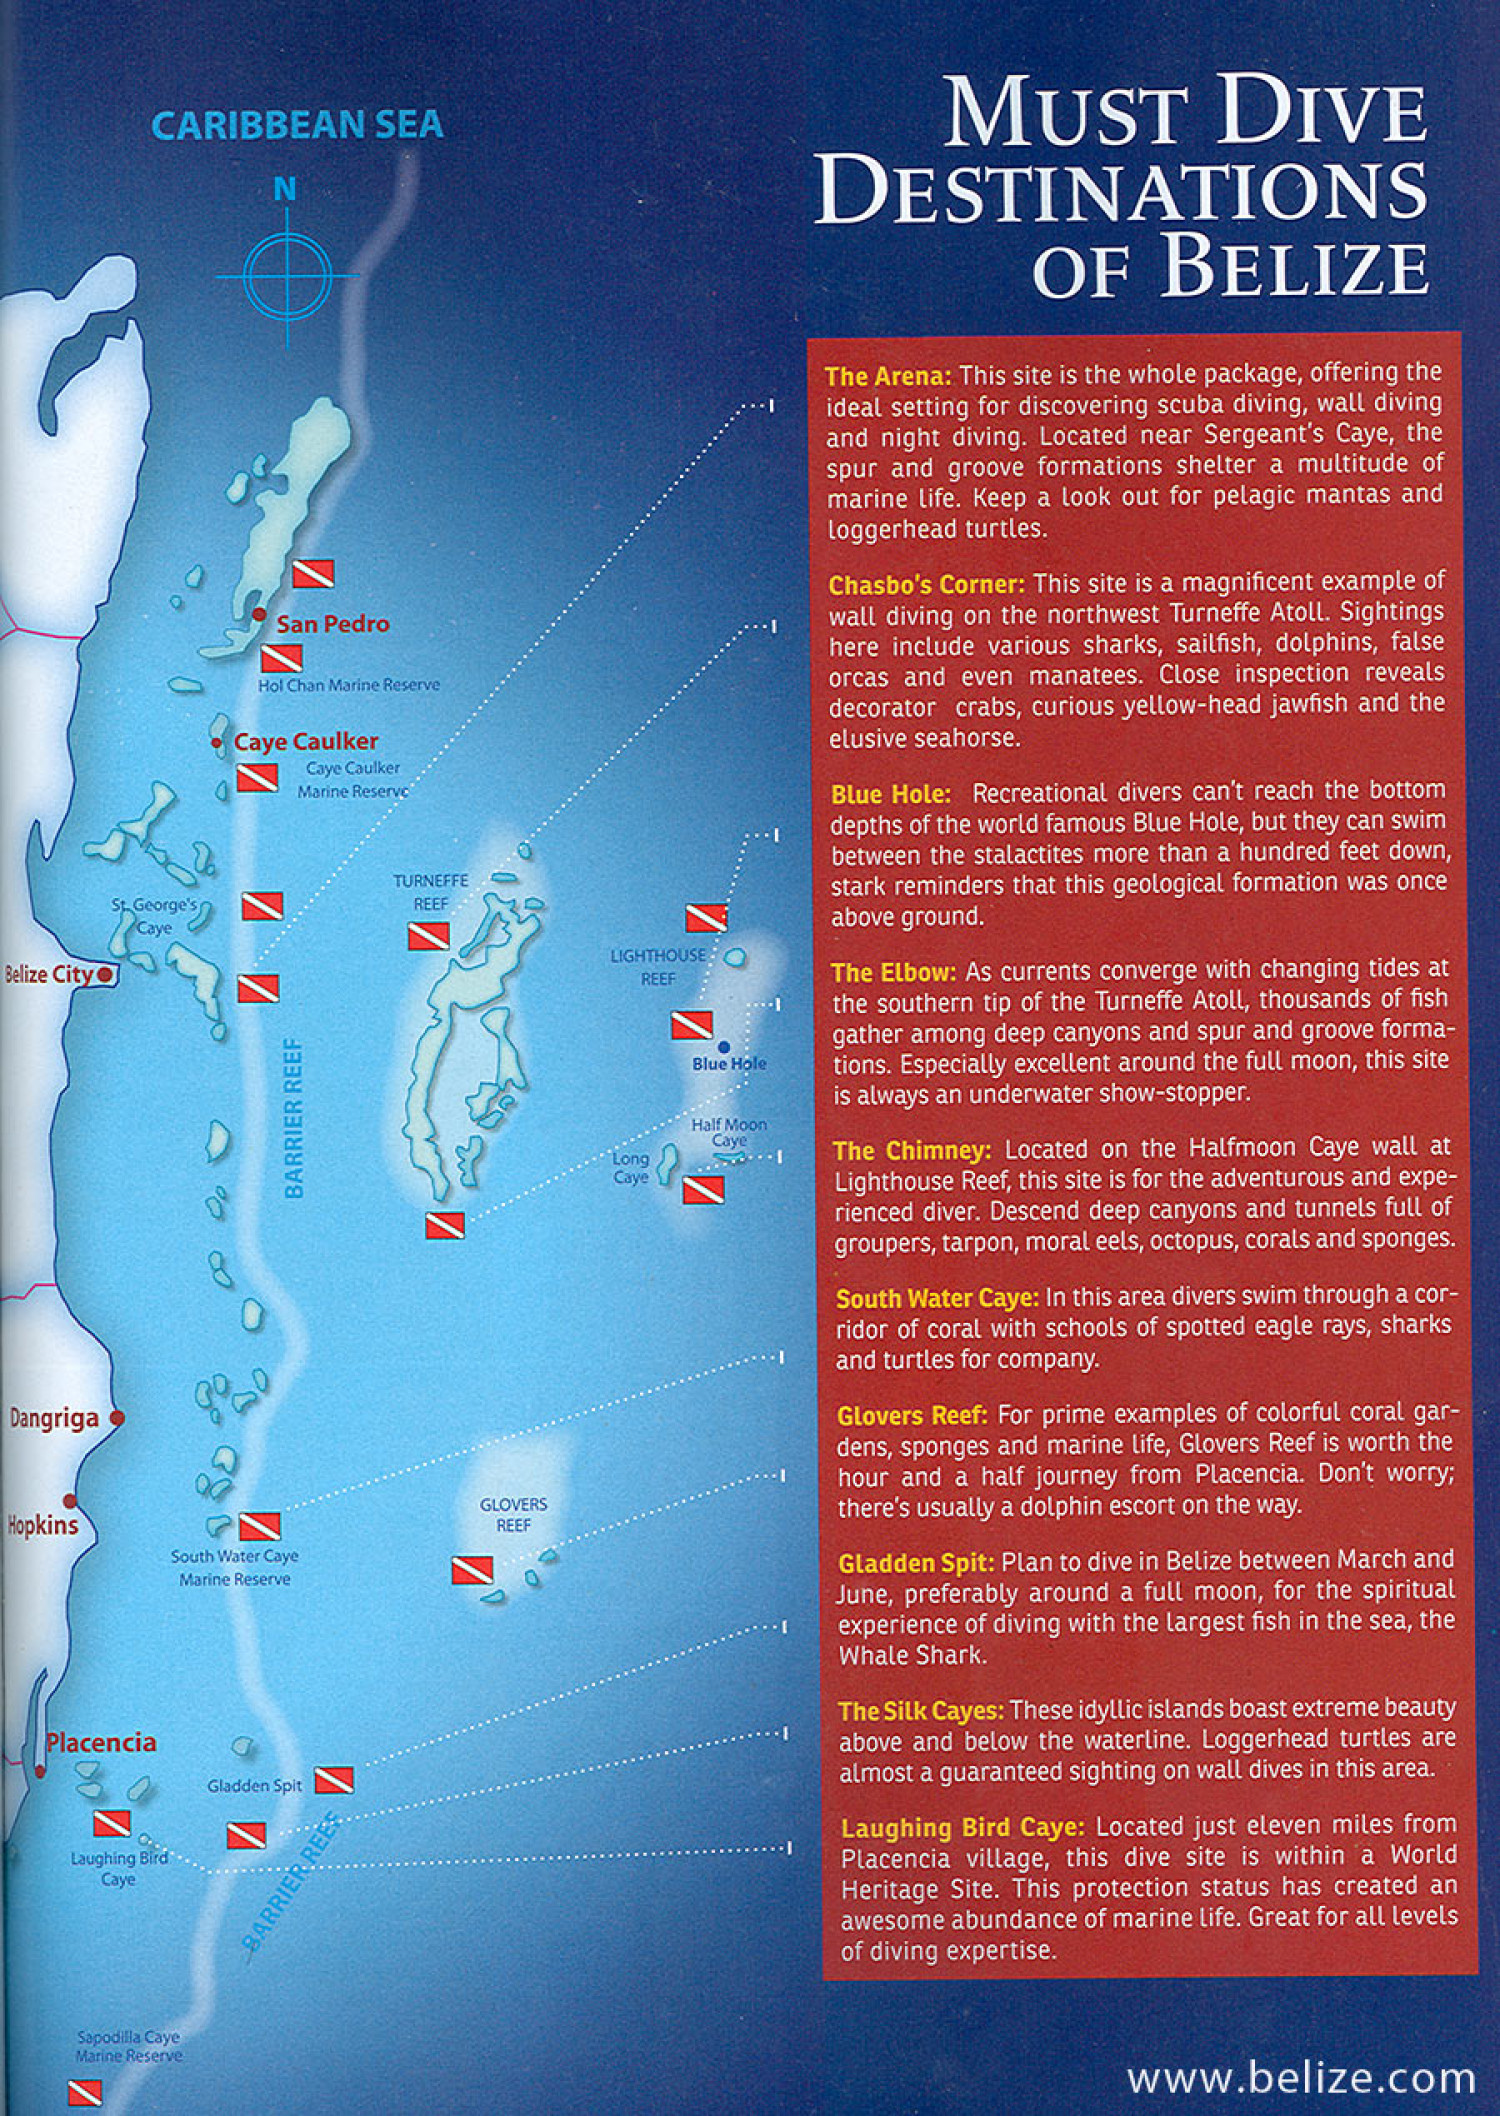 The Best Dive Spots In Belize Infographic